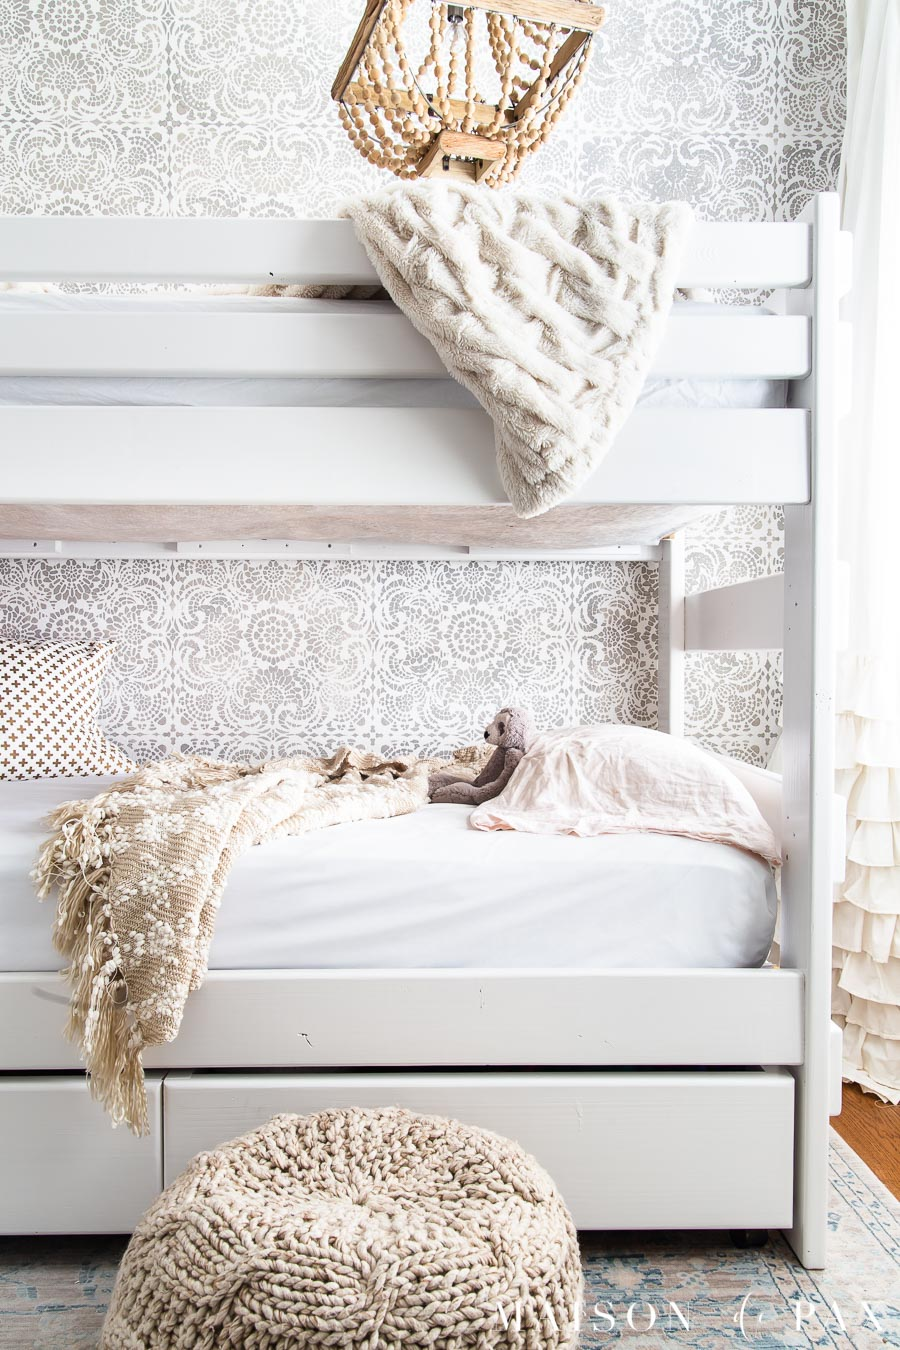 white bunk bed in front of gray and white stenciled wall | Maison de Pax